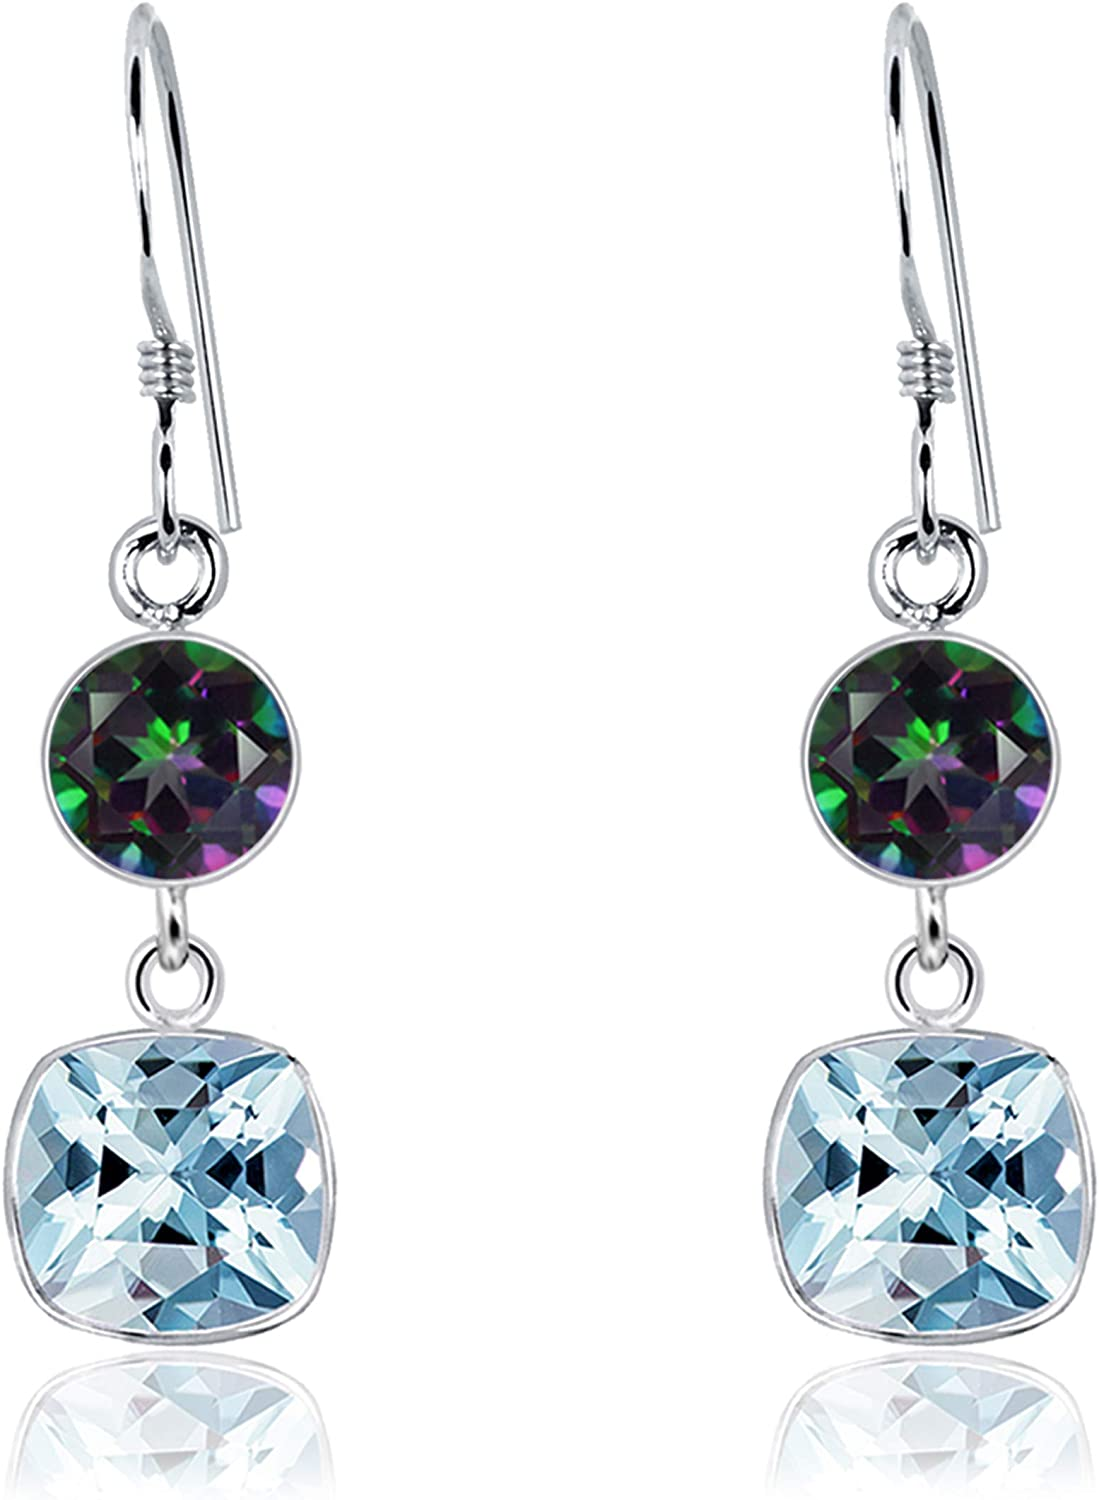 Orchid Jewelry 2.25 CTW 6MM Round Multi Mystic Topaz 925 Sterling Silver Dangle Earrings For Women - A Beautiful Pair For Little Girls and Lovely Ladies